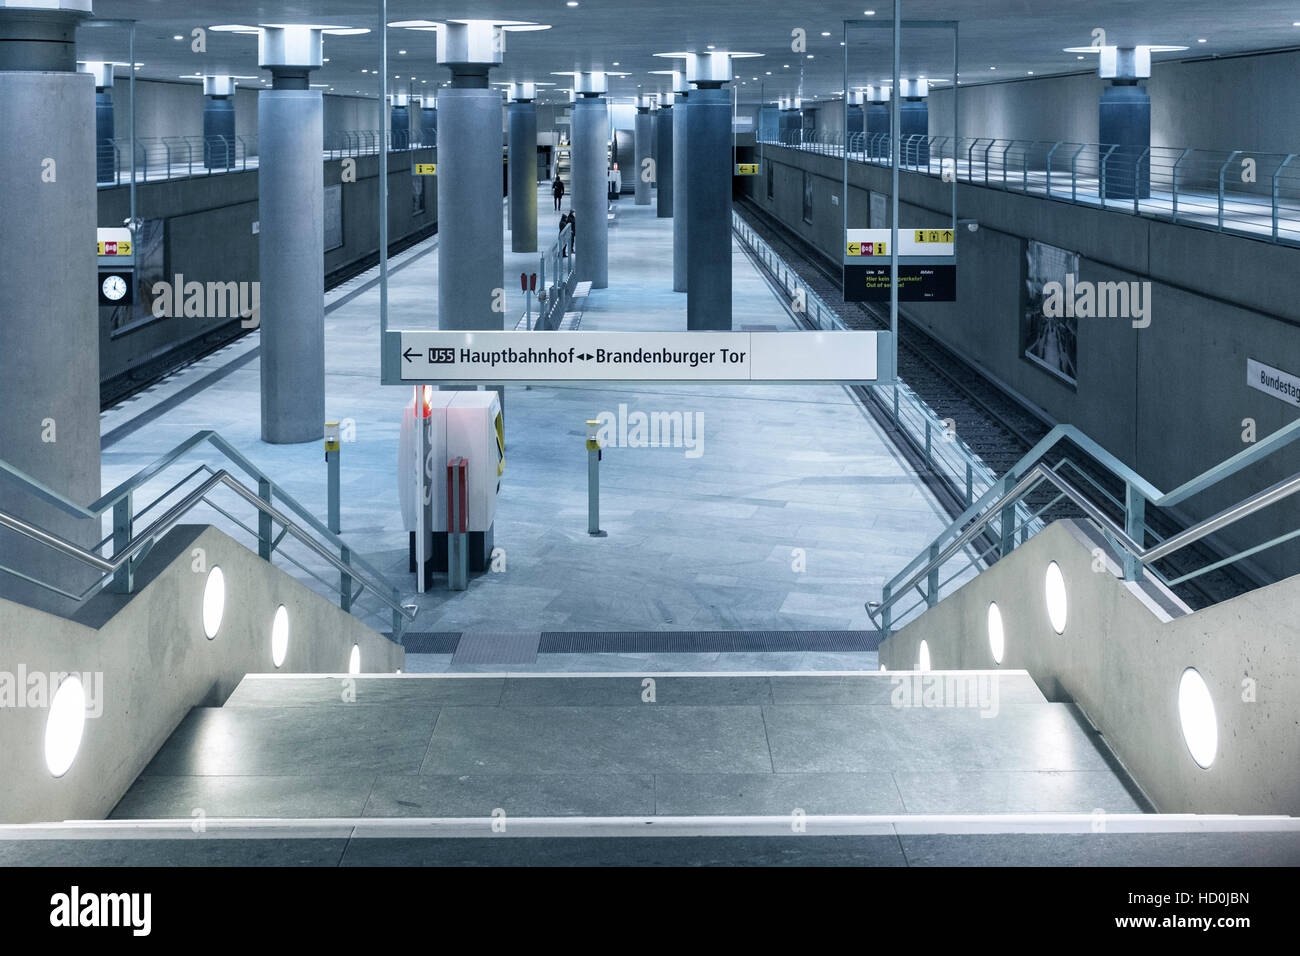 Interior of underground station at Bundestag in Berlin, Germany - Stock Image